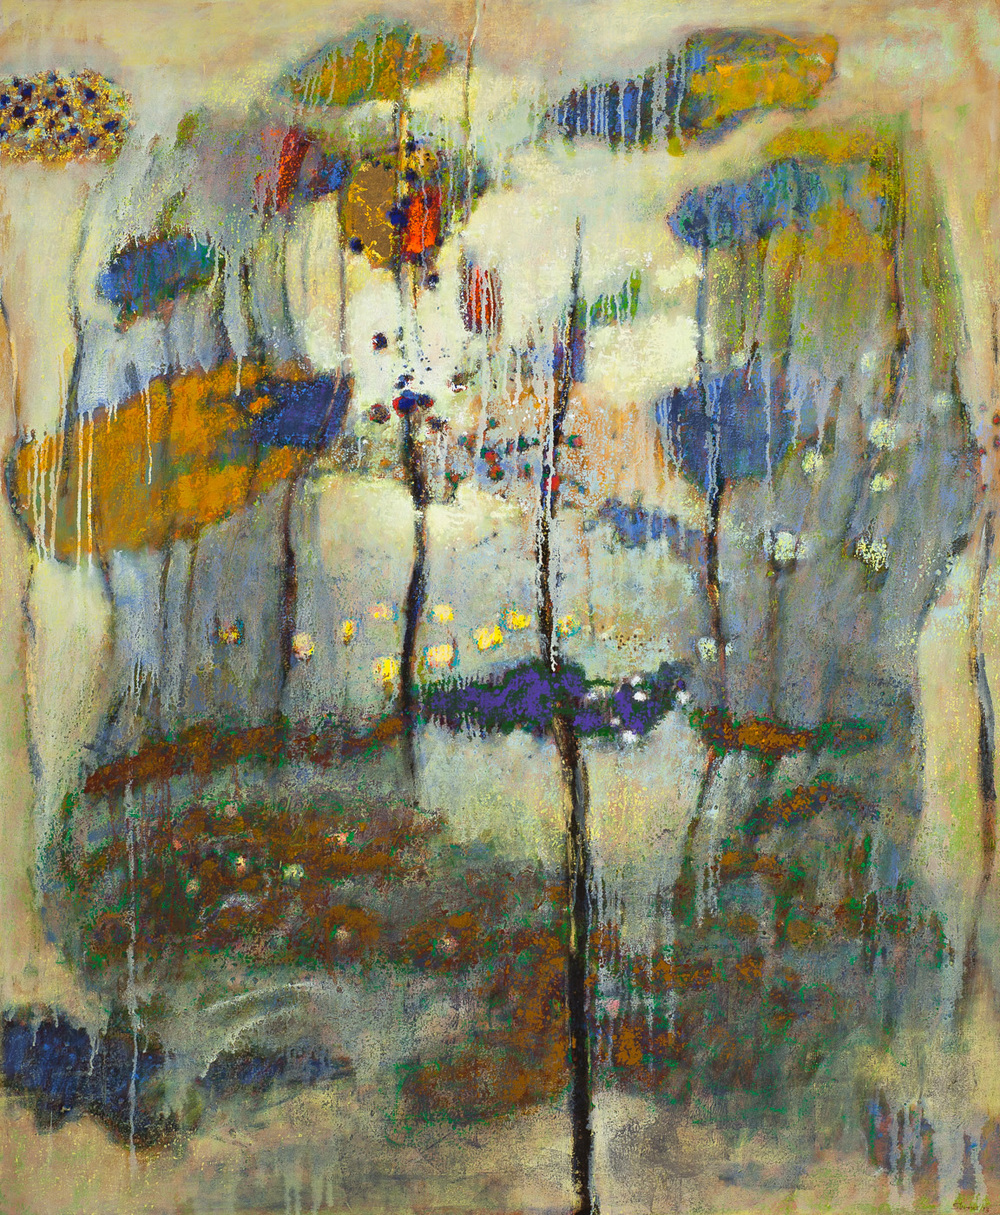 Vanishing Into Stillness   | oil on canvas | 58 x 48"